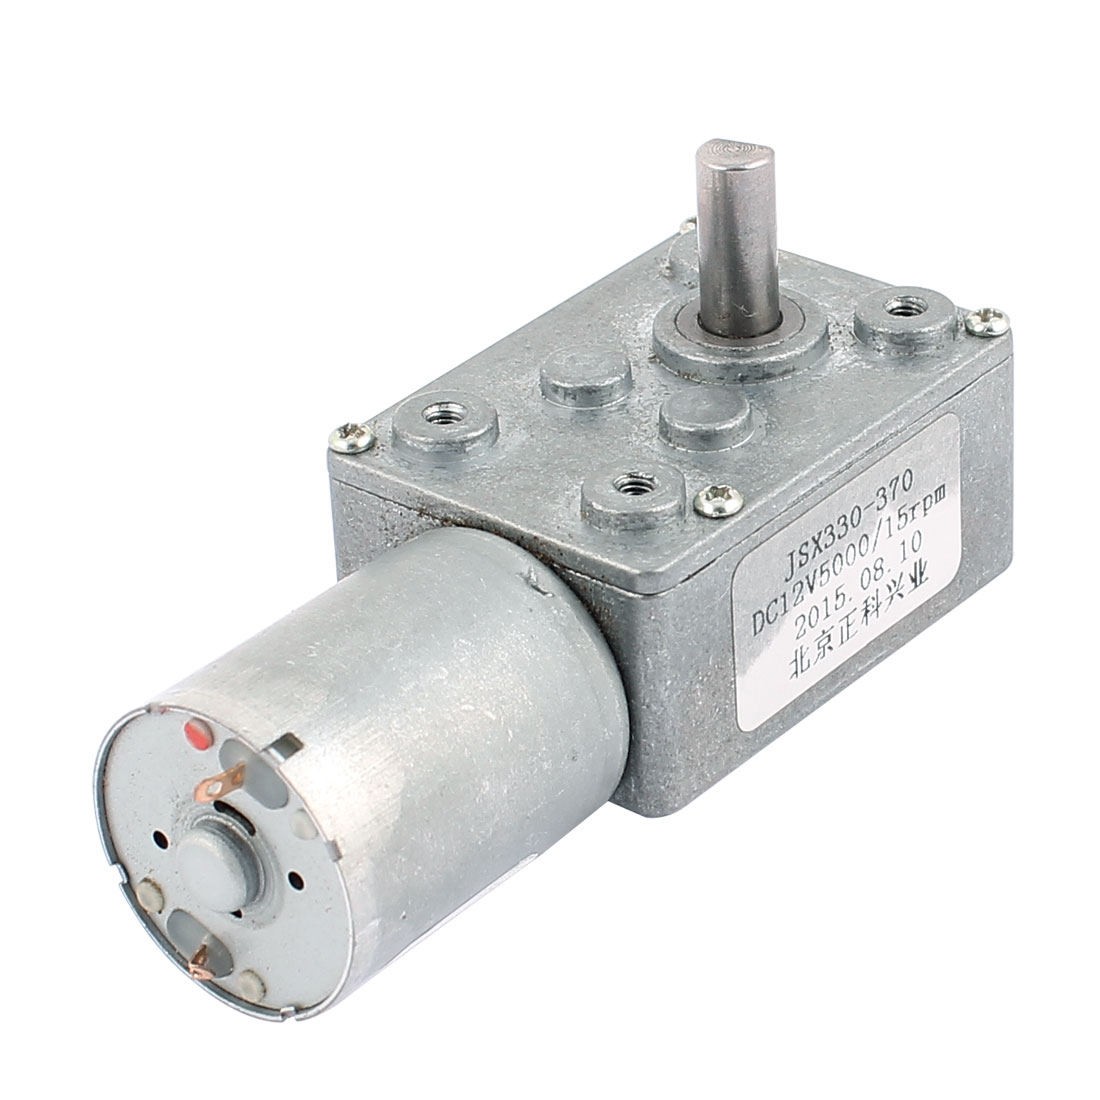 DC 12V 15RPM 6mmx13mm D-Shape Shaft Electric Power Turbo Worm Geared Motor